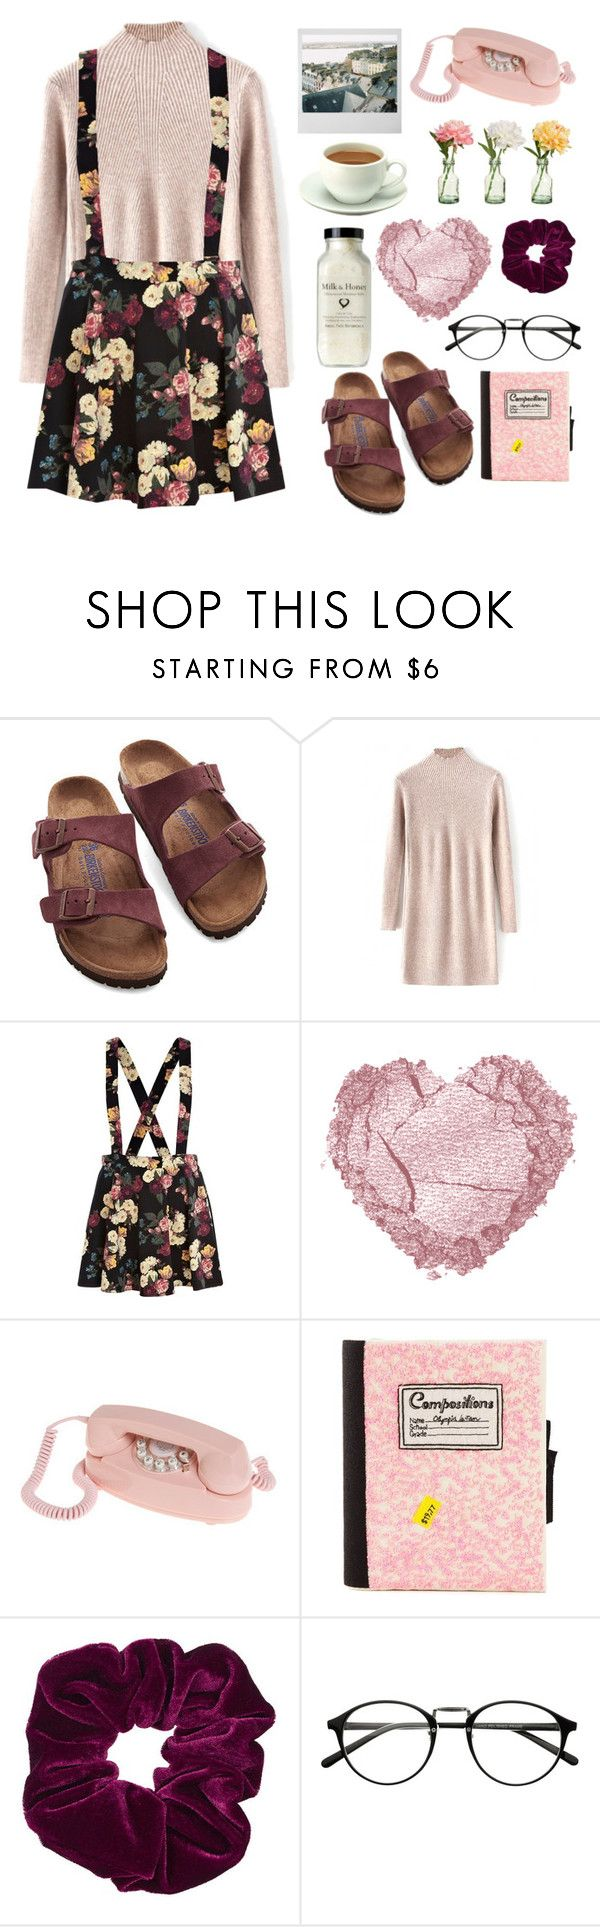 """""""Alaina"""" by galadriel-lynn ❤ liked on Polyvore featuring moda, Birkenstock, River Island, PEONY, Olympia Le-Tan, Topshop, women's clothing, women, female y woman"""